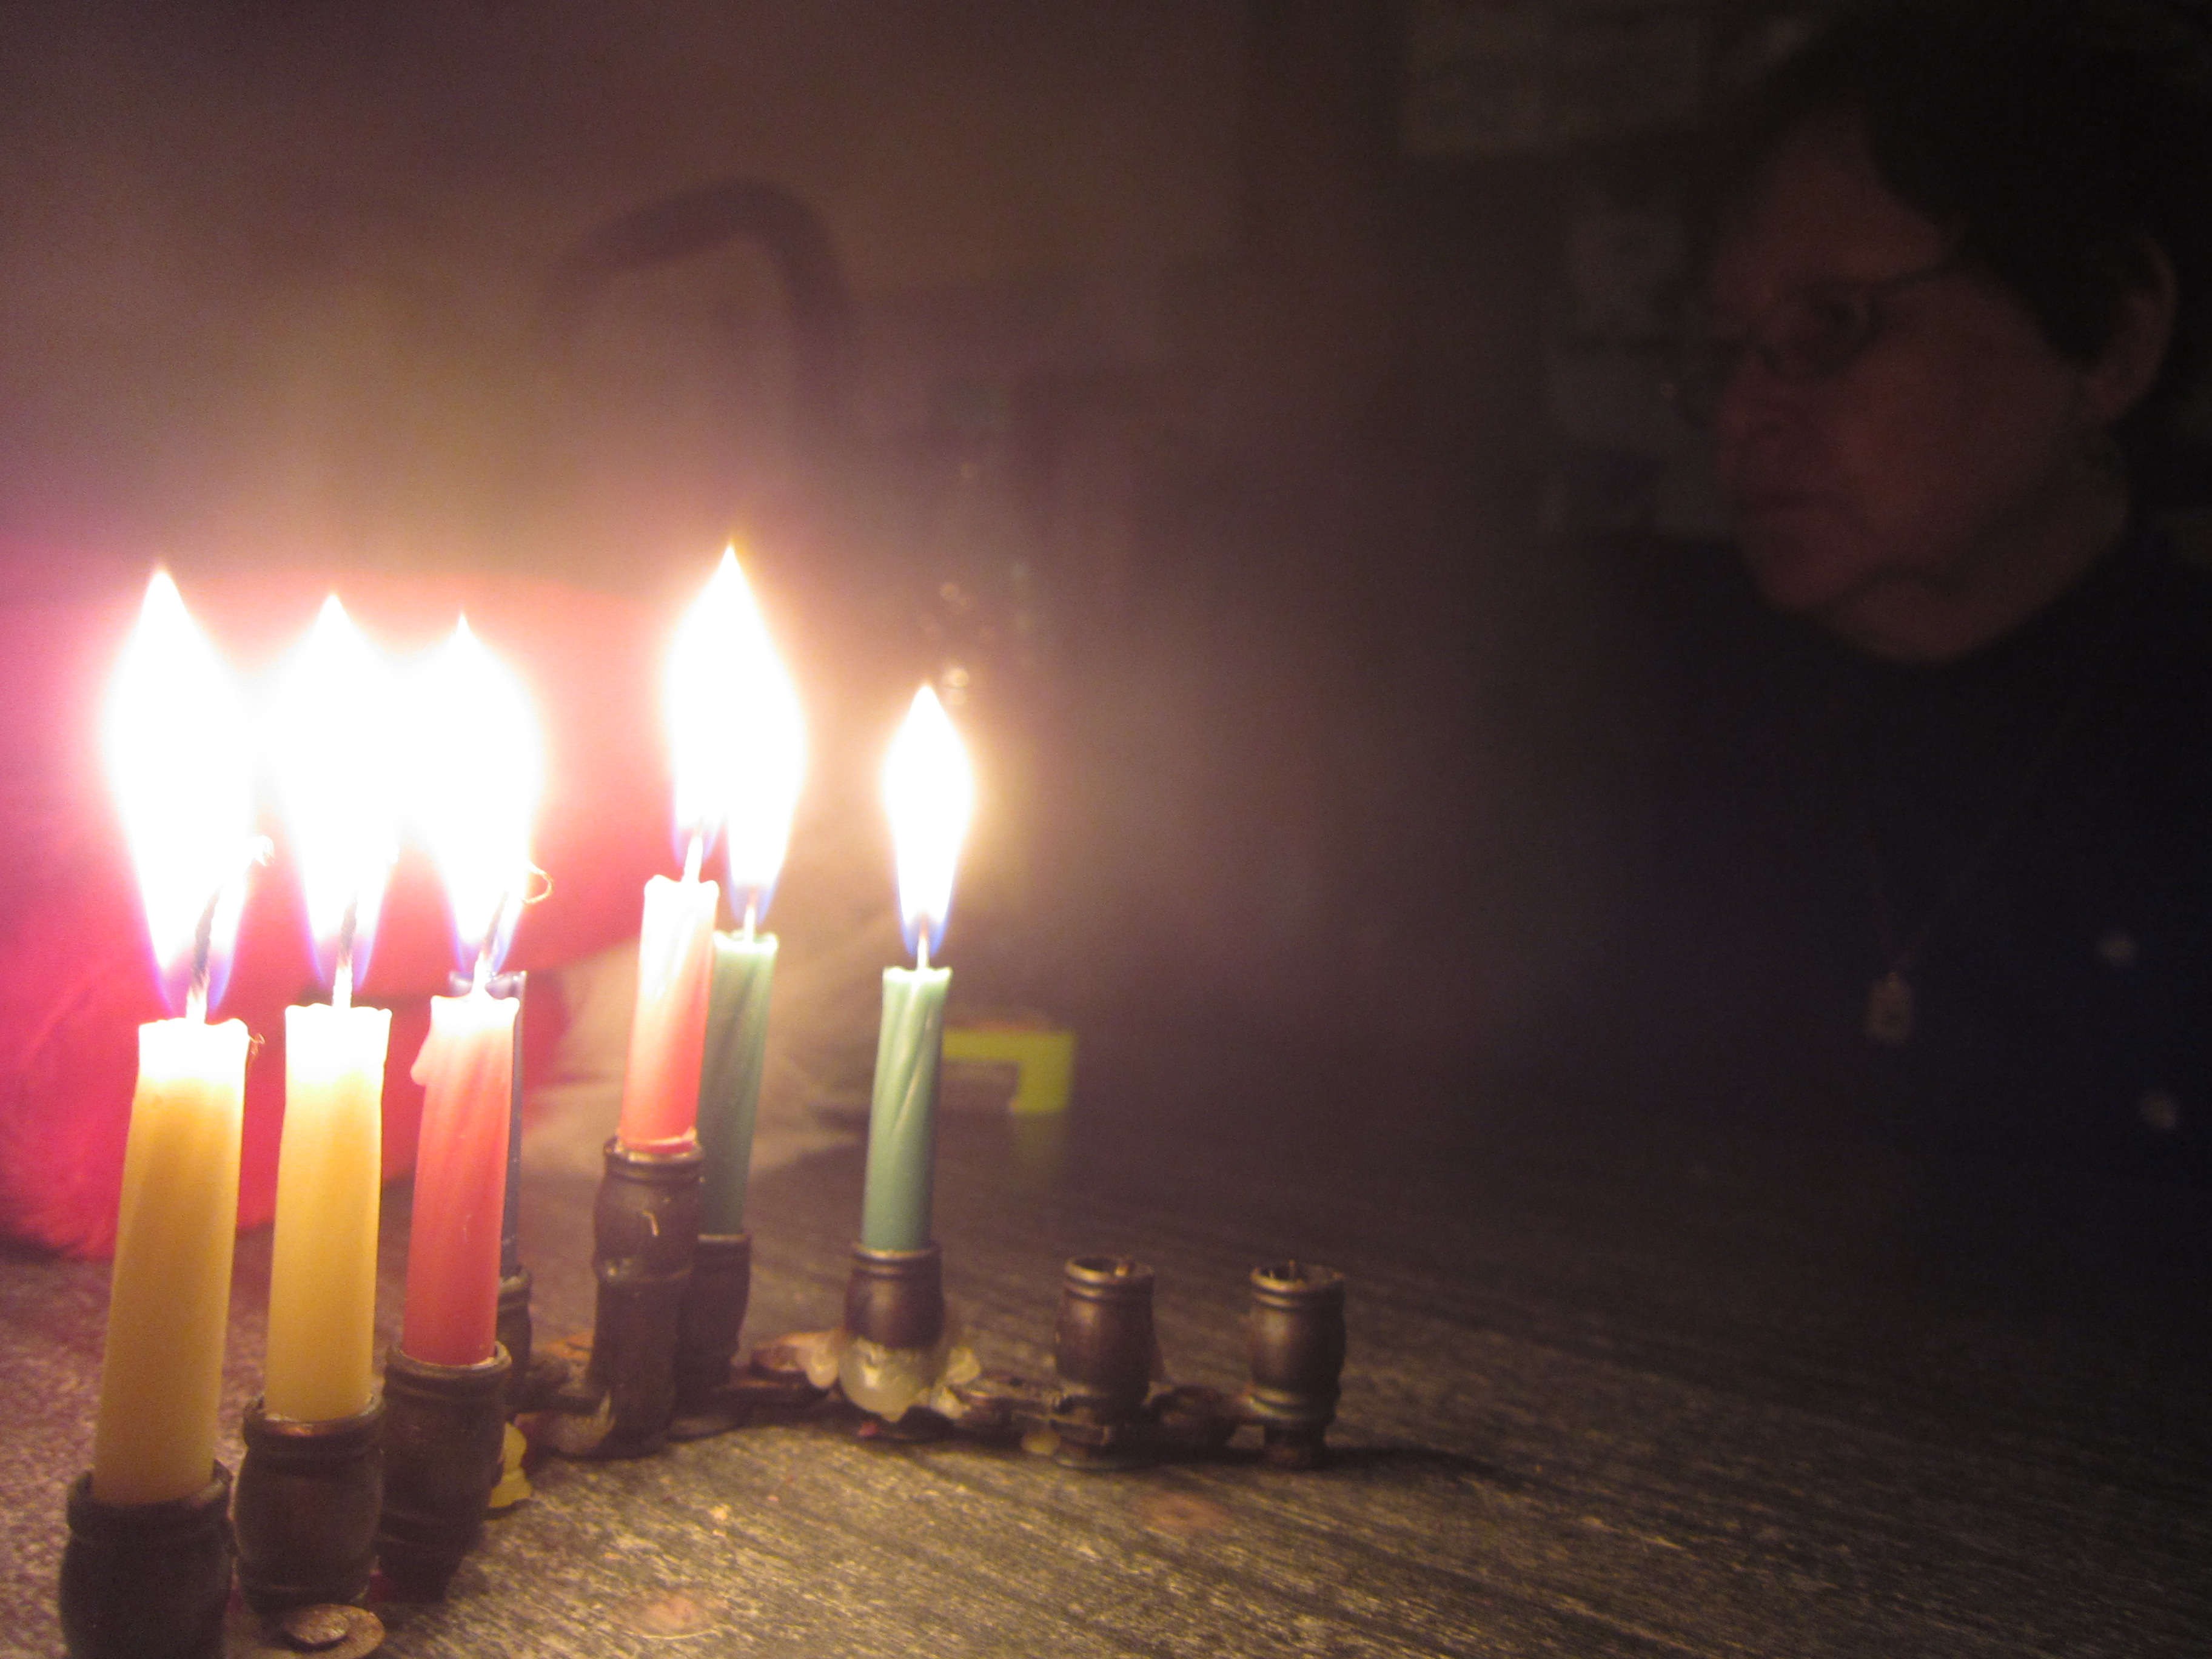 A small menorah with six lit candles, with a person's face obscured in the dark background